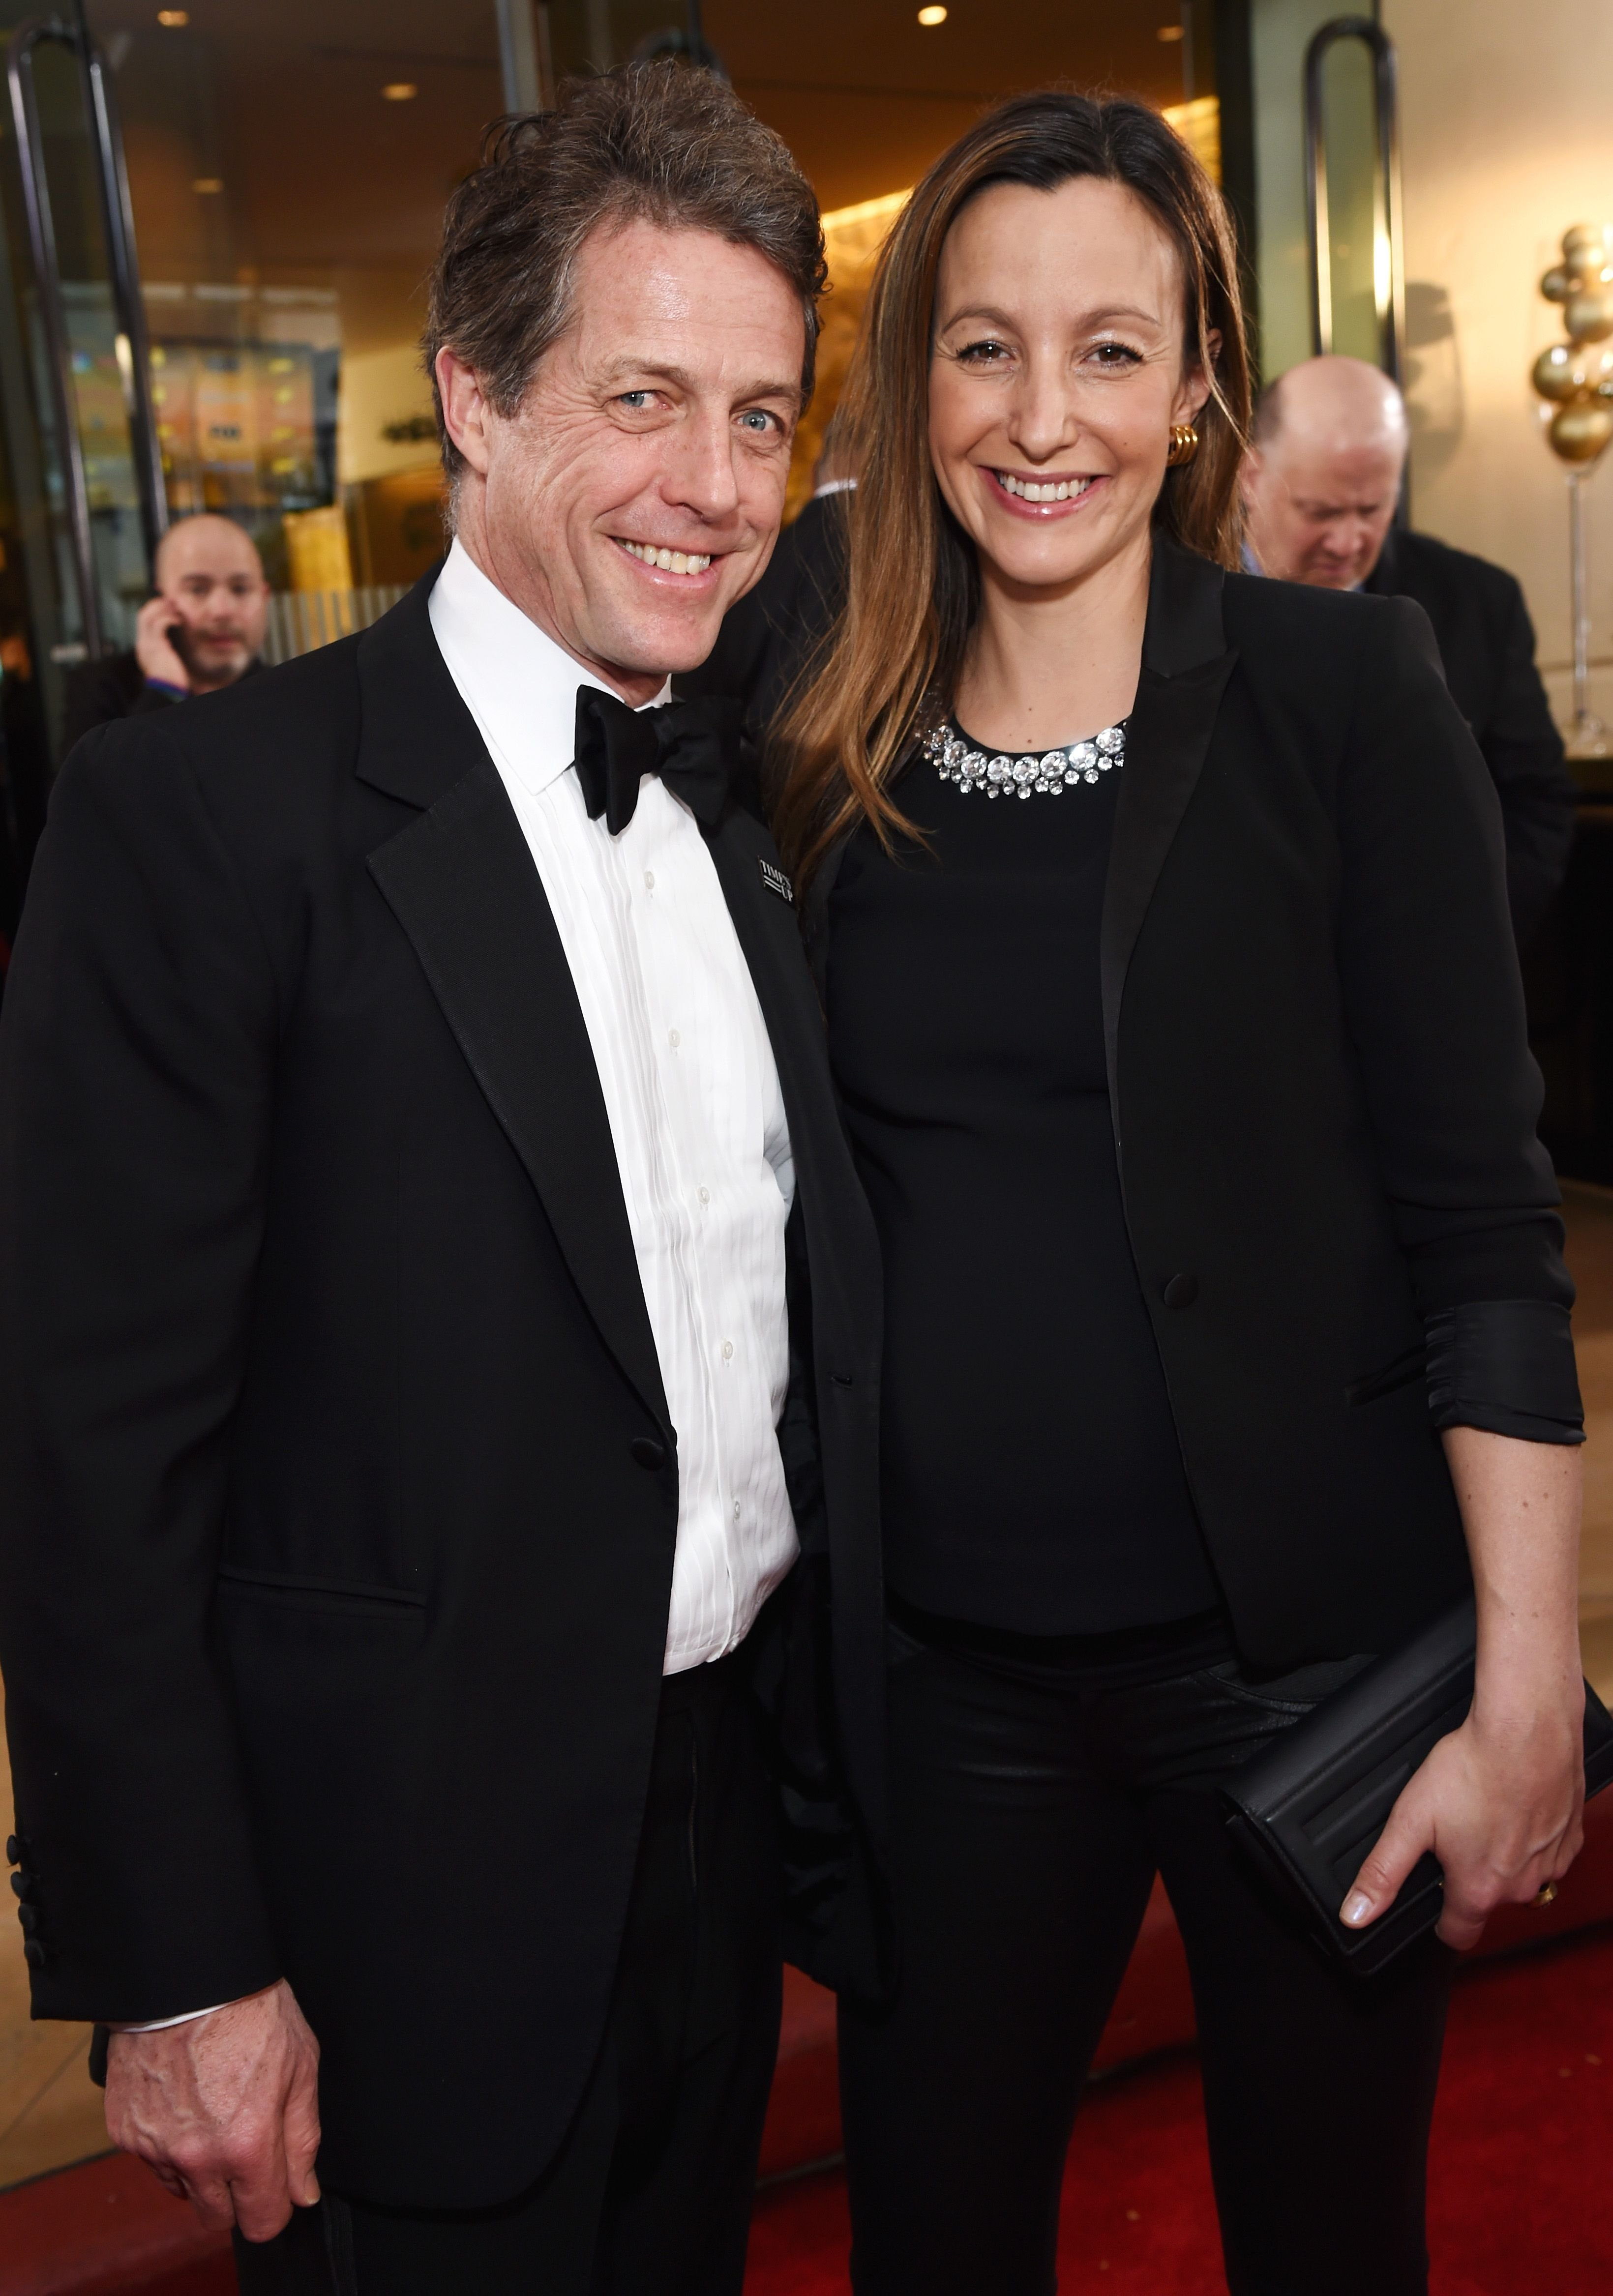 Actor Hugh Grant and Anna Eberstein celebrate The 75th Annual Golden Globe Awards with Moet & Chandon at The Beverly Hilton Hotel on January 7, 2018   Photo: Getty Images